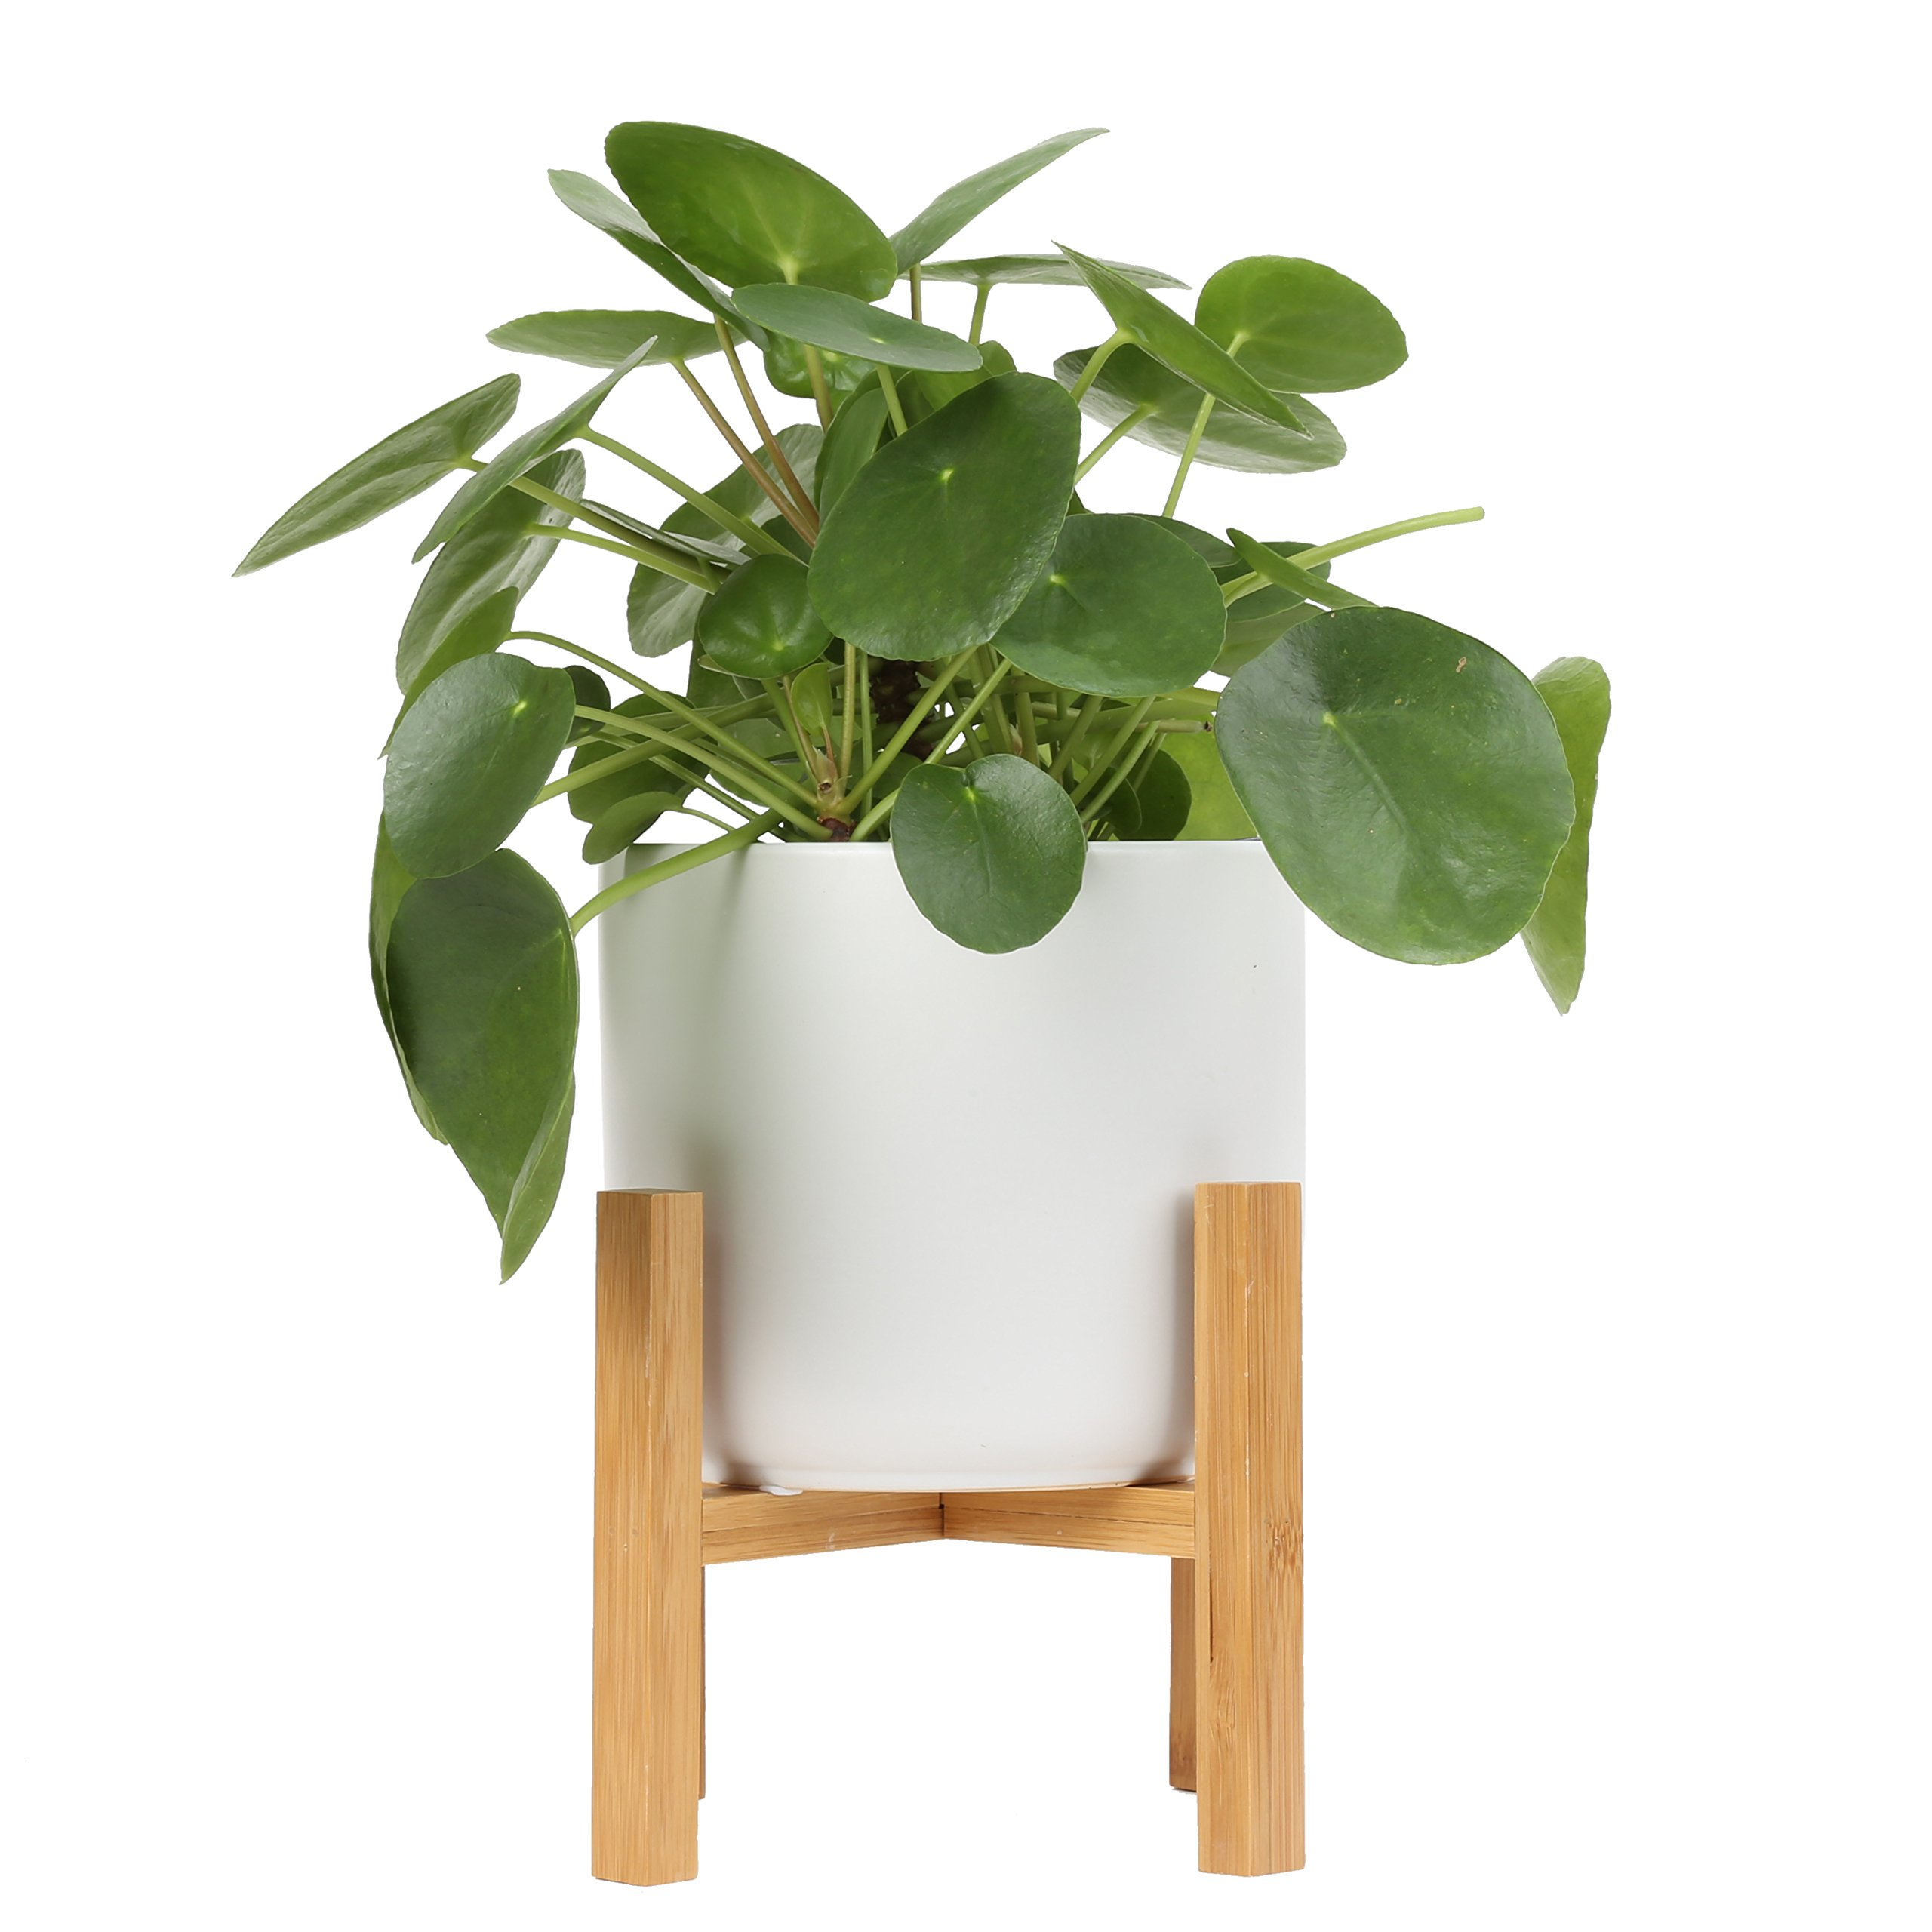 Costa Farms Pilea Sharing Indoor Tabletop Plant in 6-inch Mid-Century Modern Home Decor, White Ceramic Planter with Plant Stand, Direct from Farm